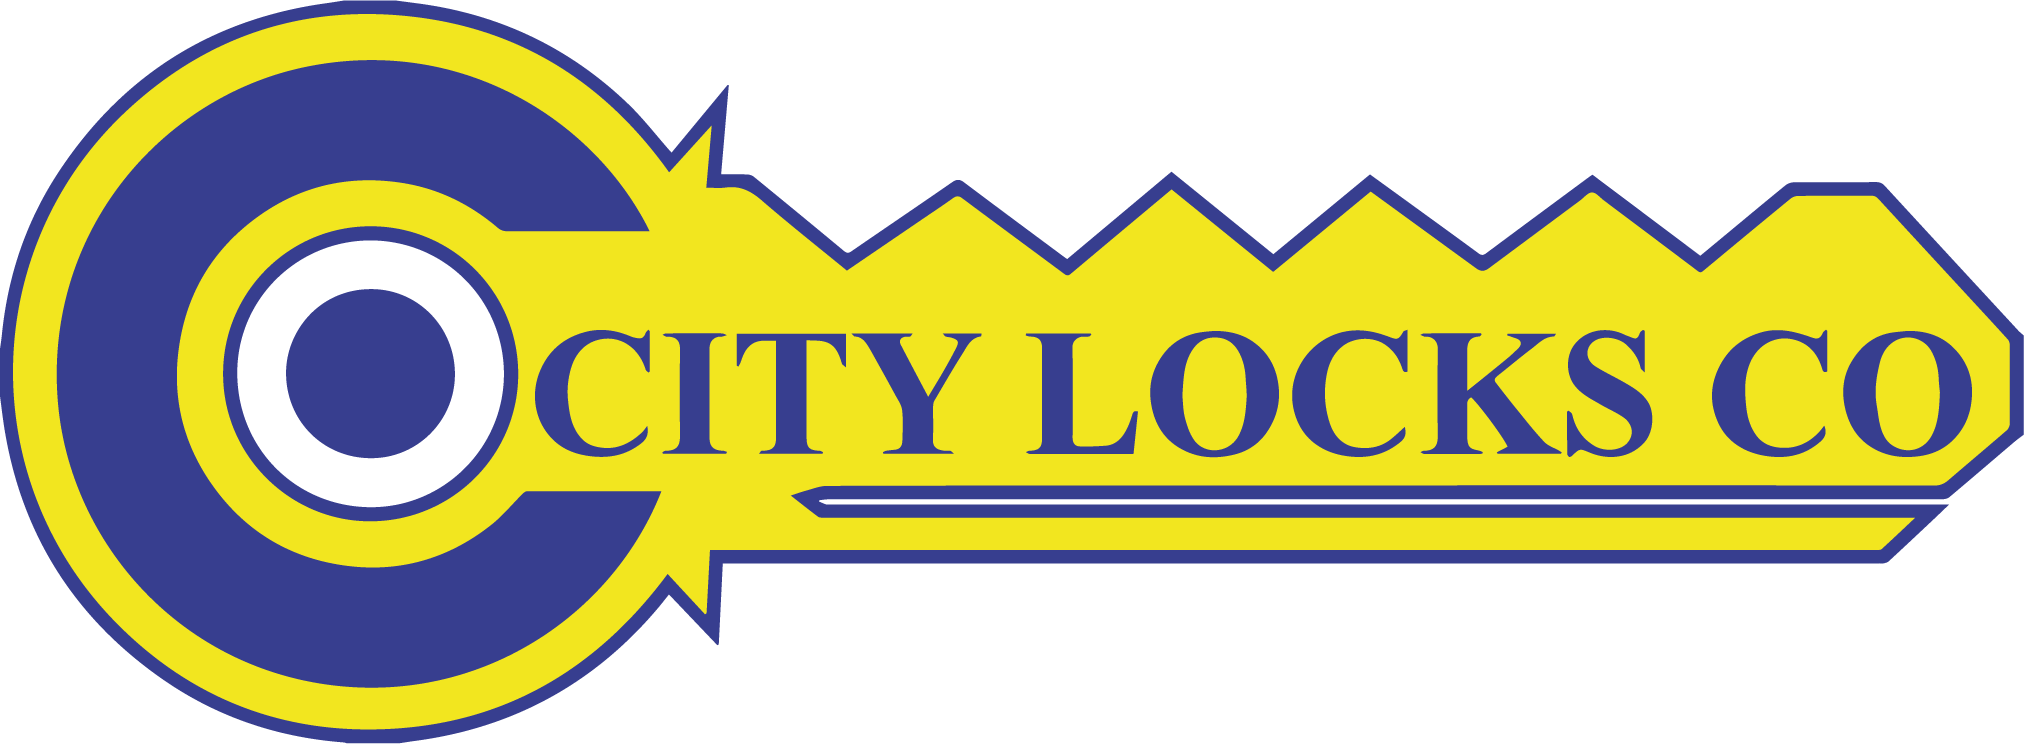 City Locks Co